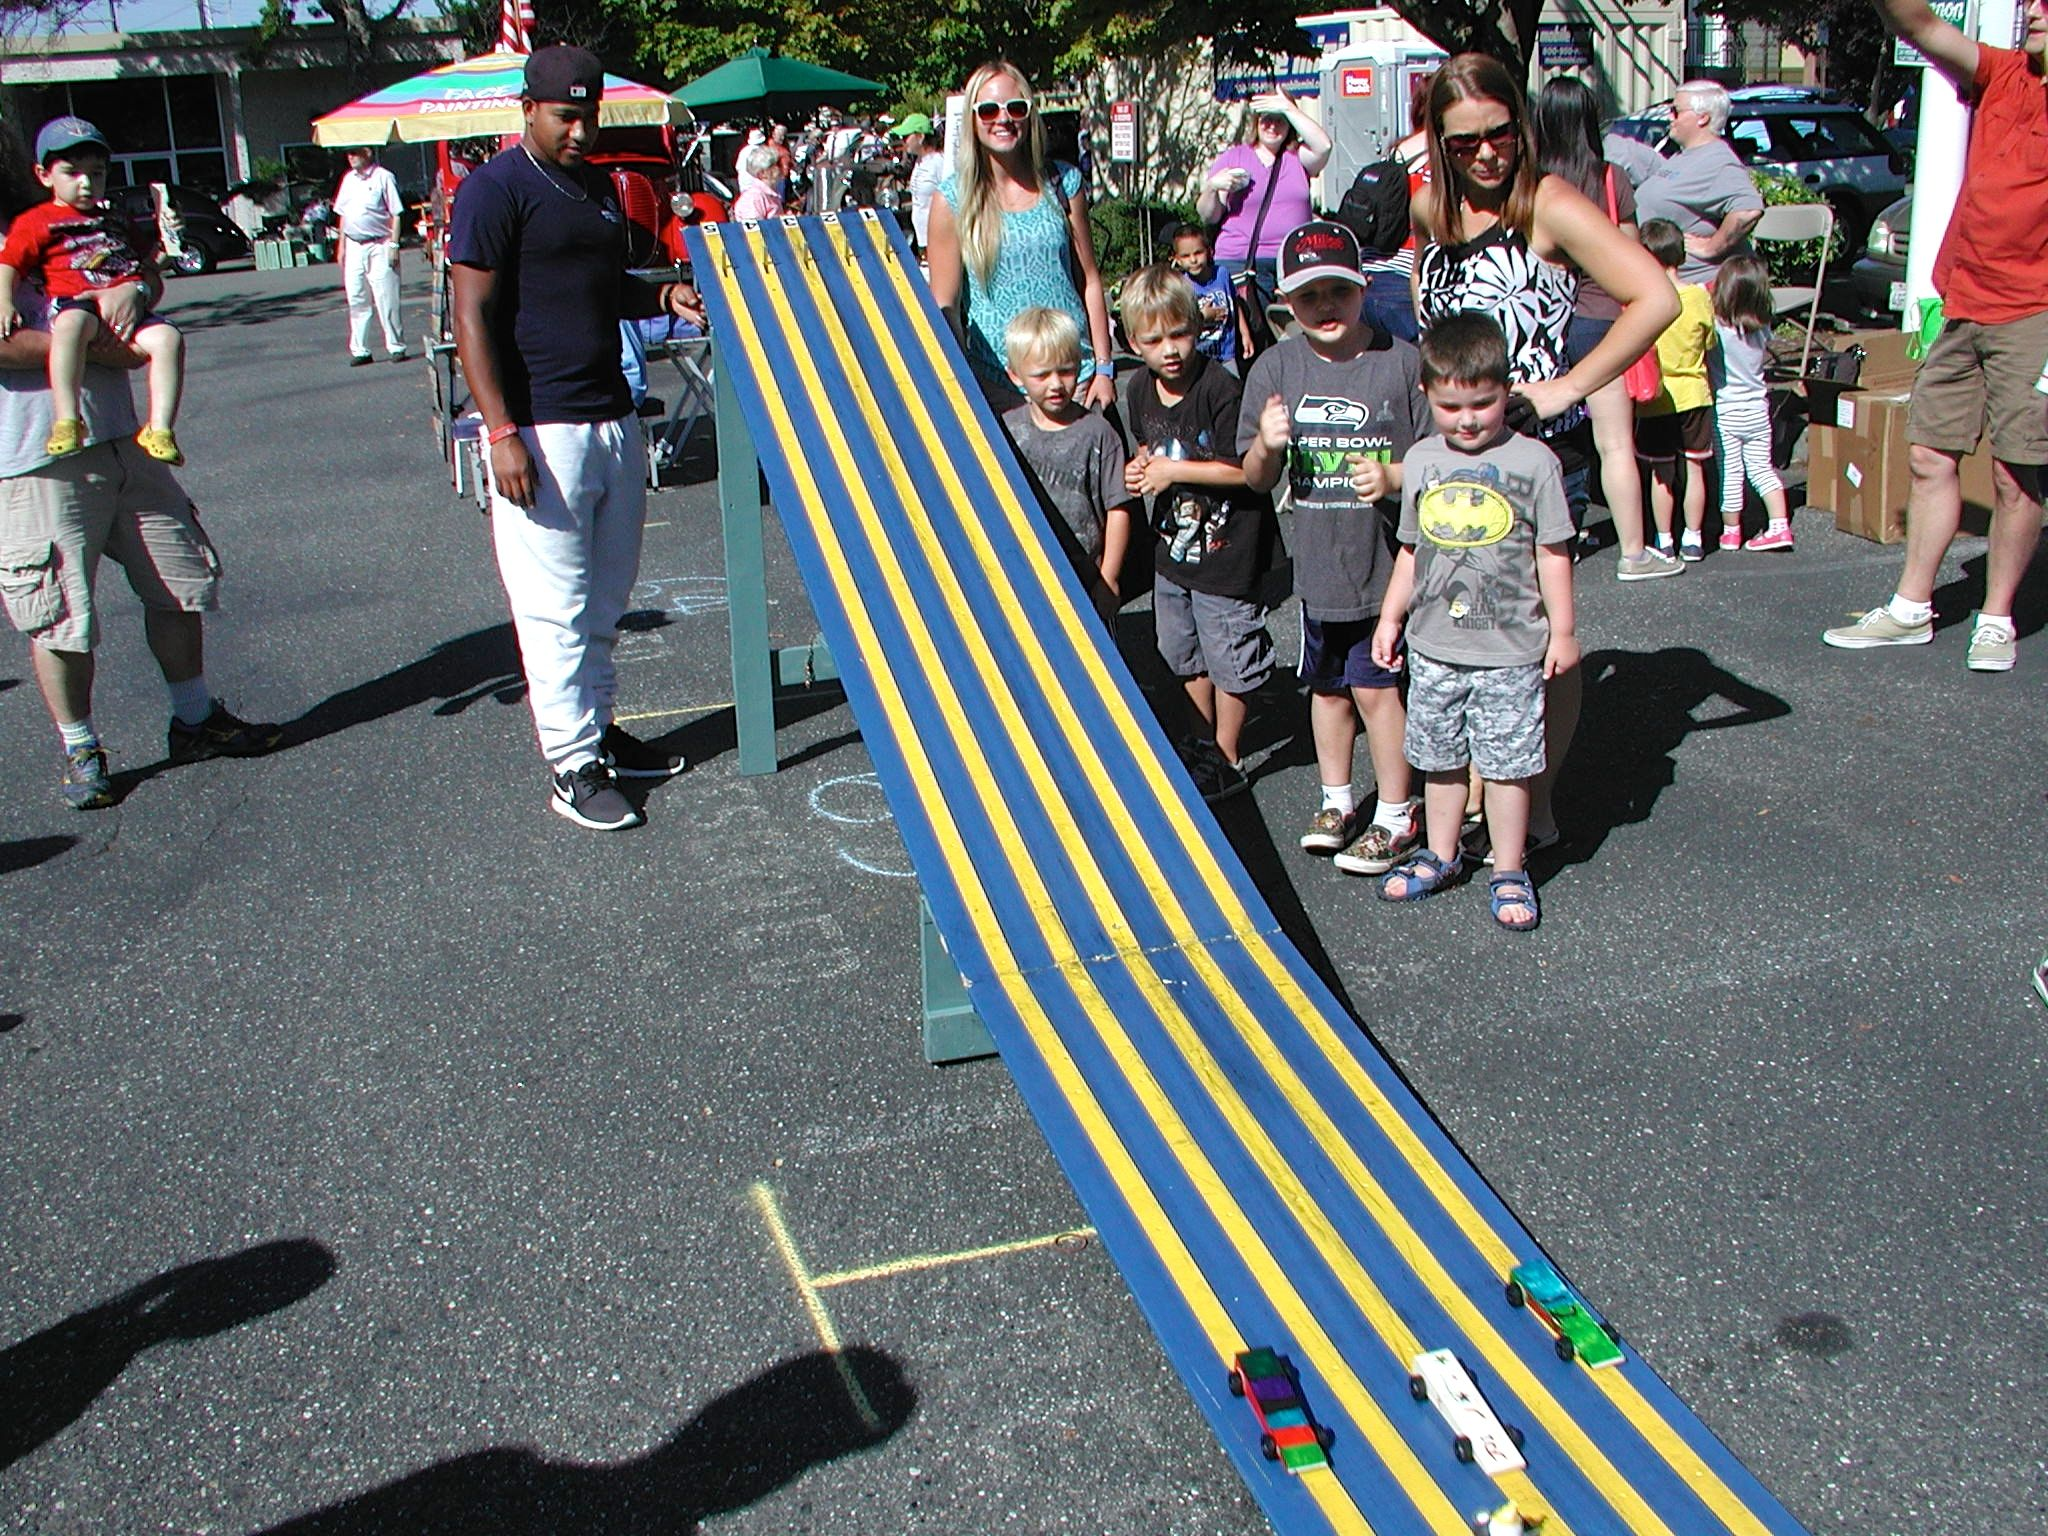 Playtime Kidfriendly Finds As Summer Segues To Fall MLTnewscom - Edmonds car show